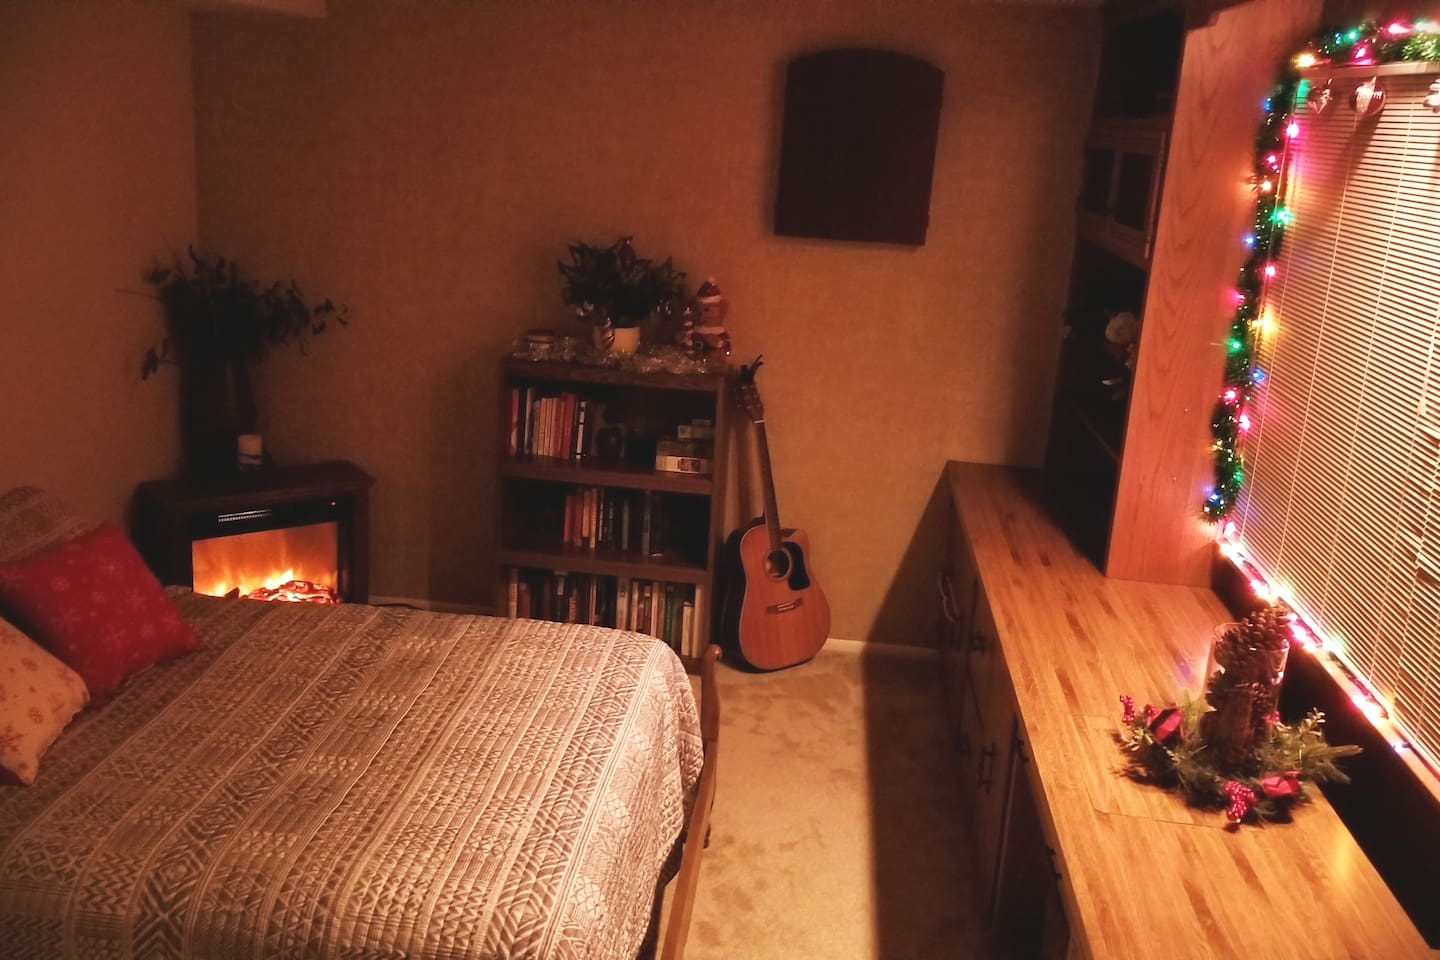 The perfect holiday getaway! Laying in a comfy queen bed next to the fire with a nice book.